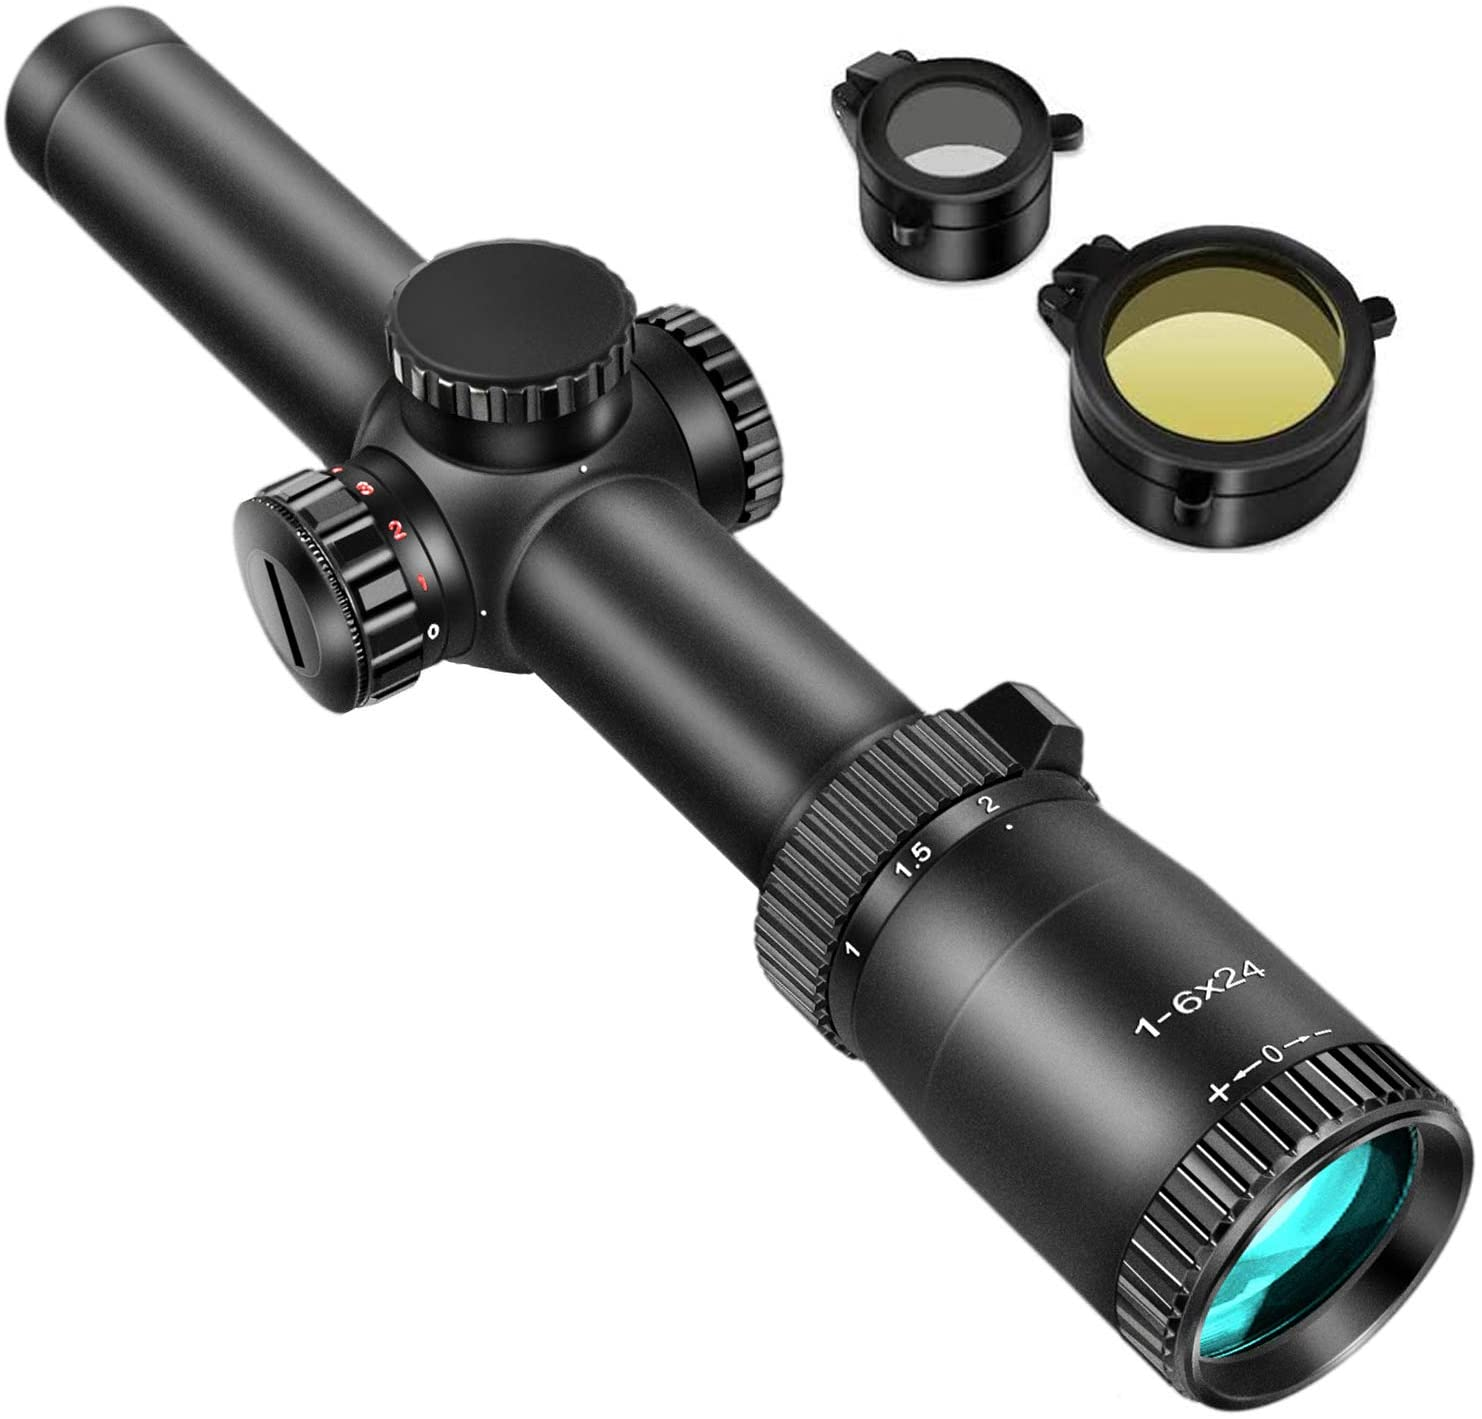 EZshoot SFP 1-6X24E RifleScope Waterproof Dual-Color (Red/Green) Illuminated-Reticle Crosshair Scope for Hunting